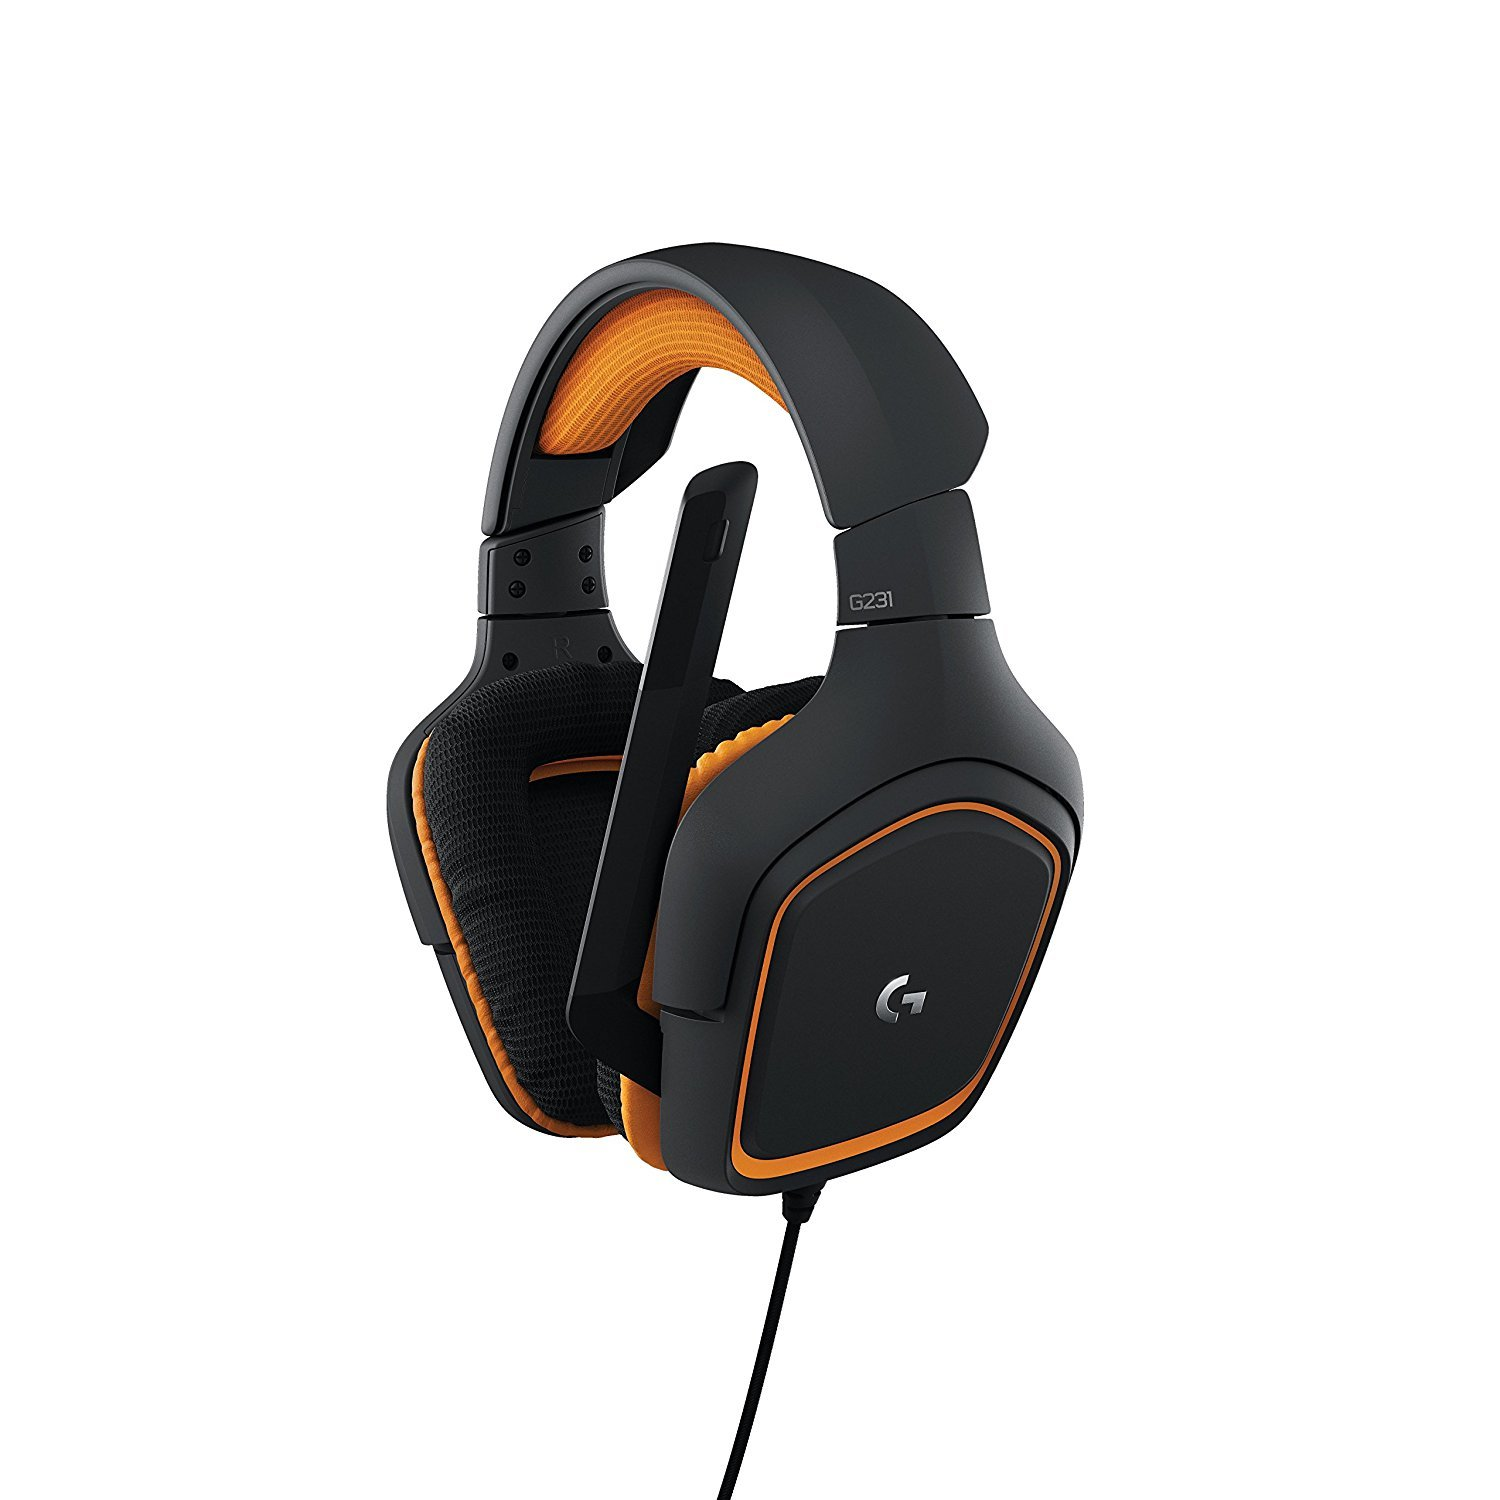 Logitech gaming headset with mic